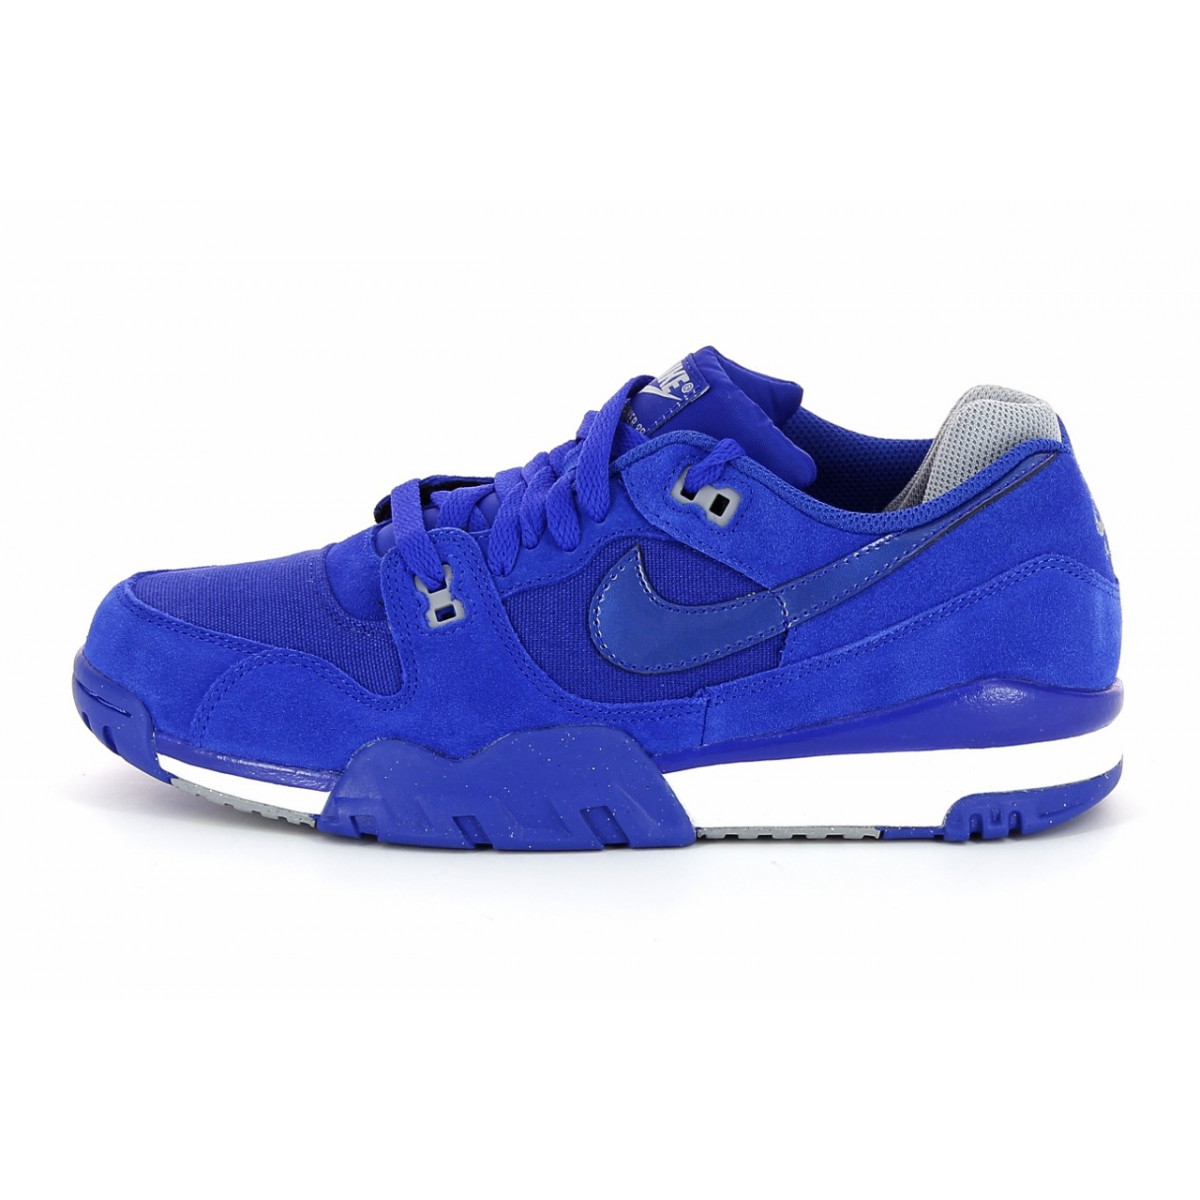 Basket Nike Air Trainer 88 - Ref. 543365-401. Loading zoom